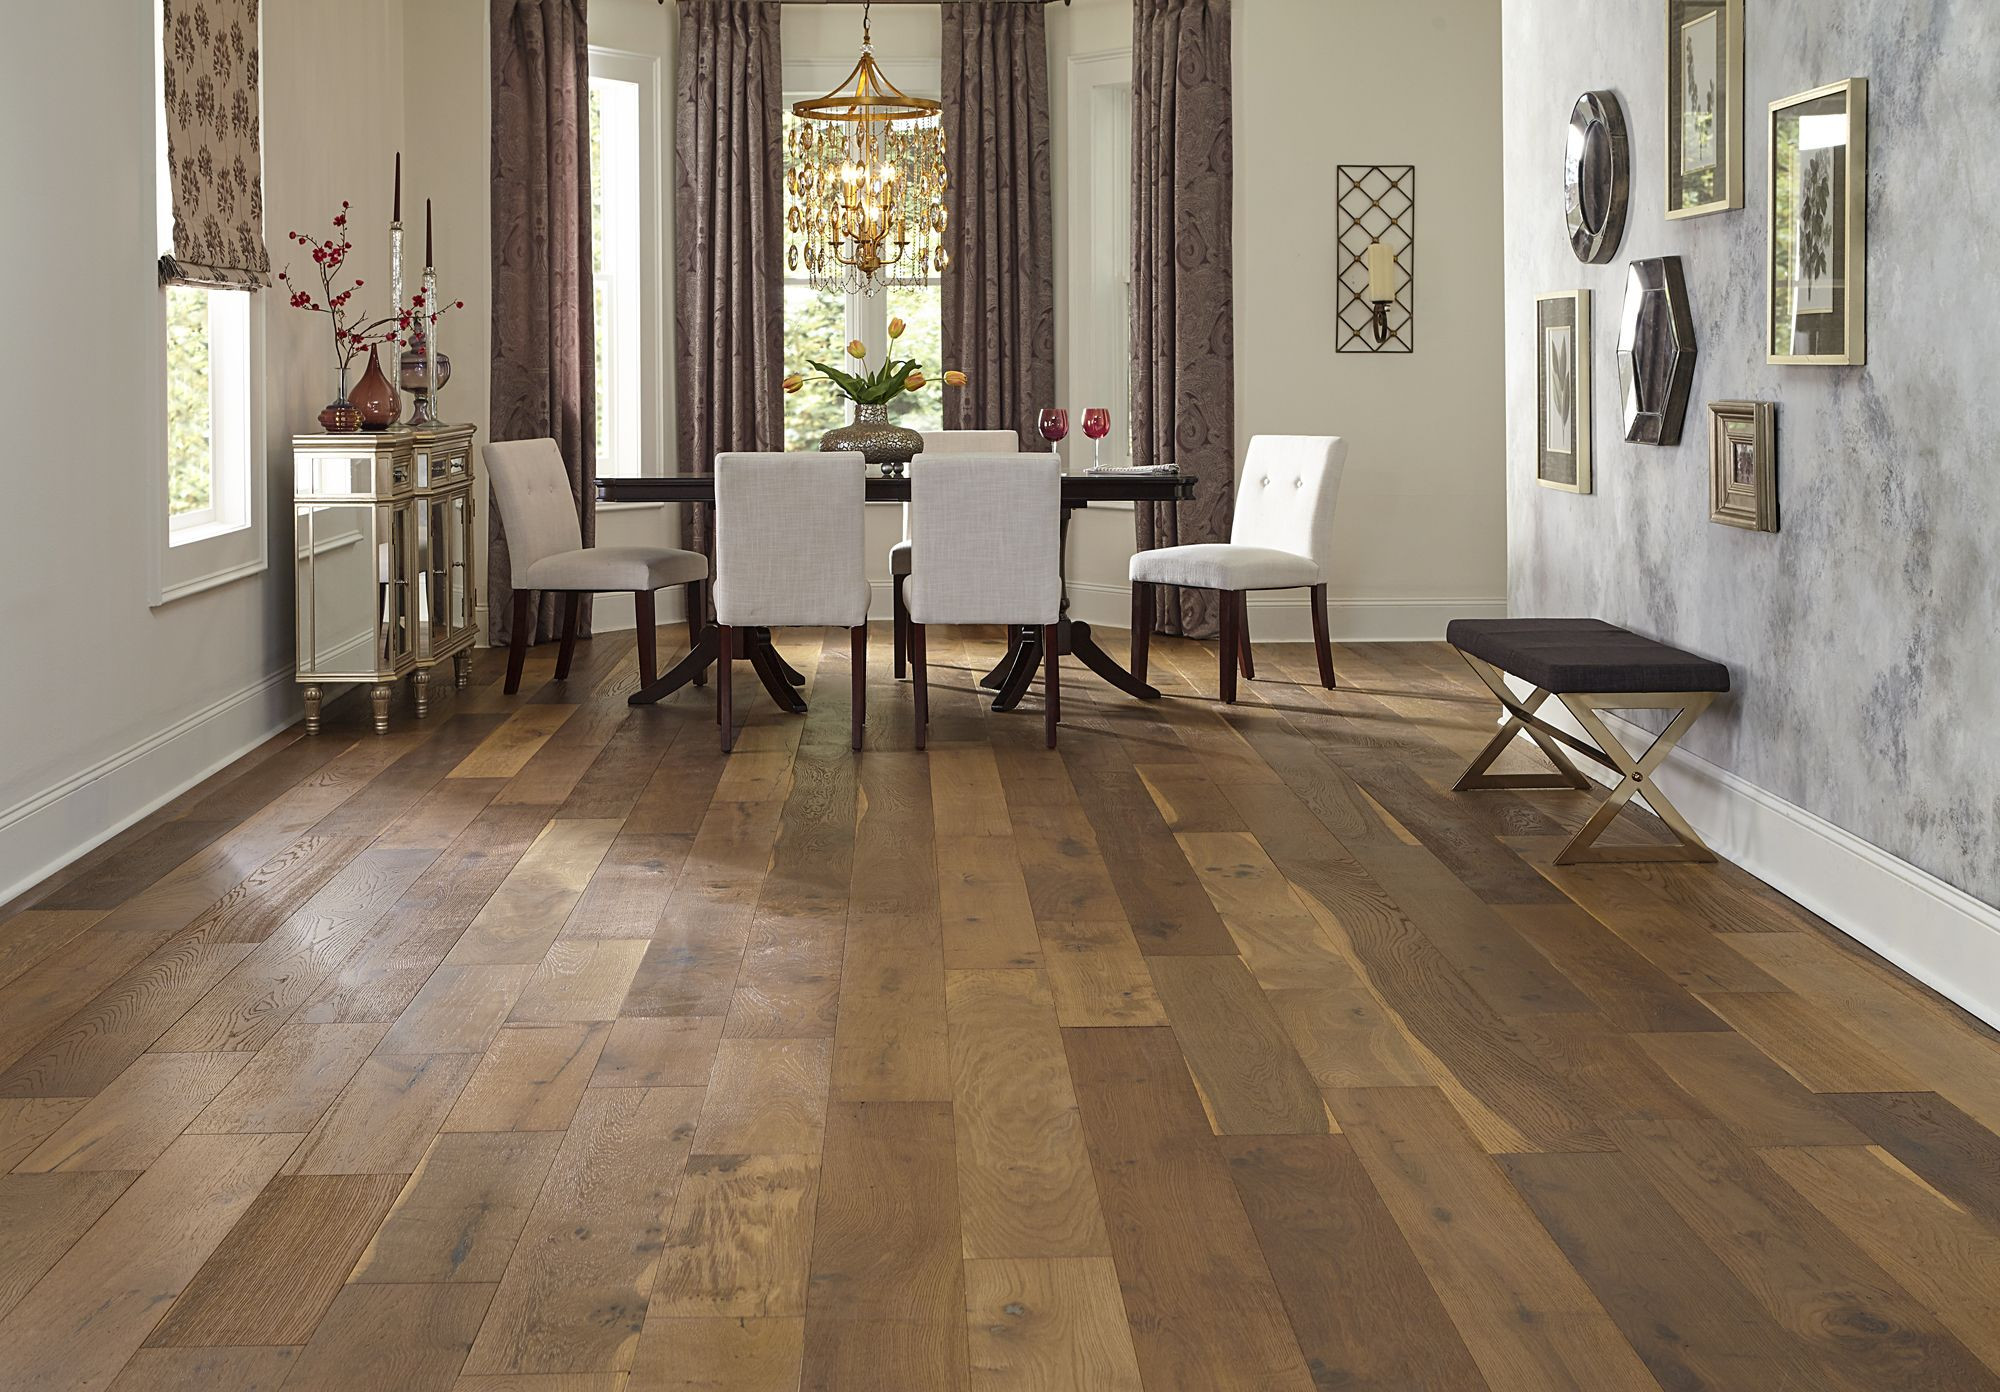 engineered hardwood flooring cost per square foot of 7 1 2 wide planks and a rustic look bellawood willow manor oak has with regard to 7 1 2 wide planks and a rustic look bellawood willow manor oak has a storied old world appearance